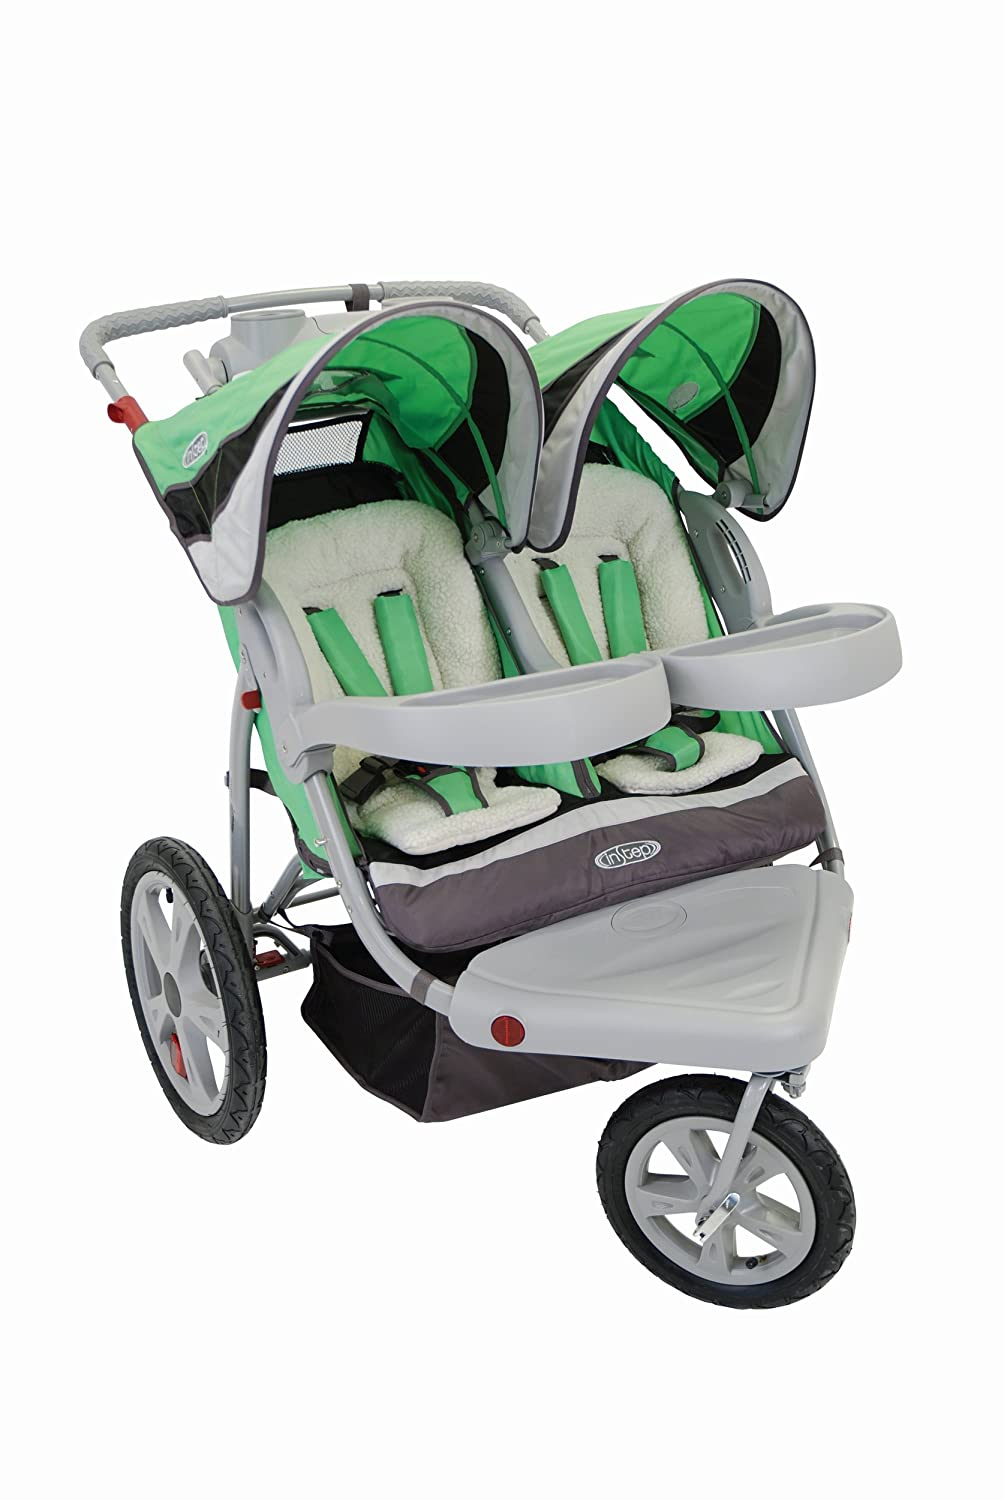 Instep 01157CCWU Grand Safari Double Jogger - Green/Black Dorel Juvenile